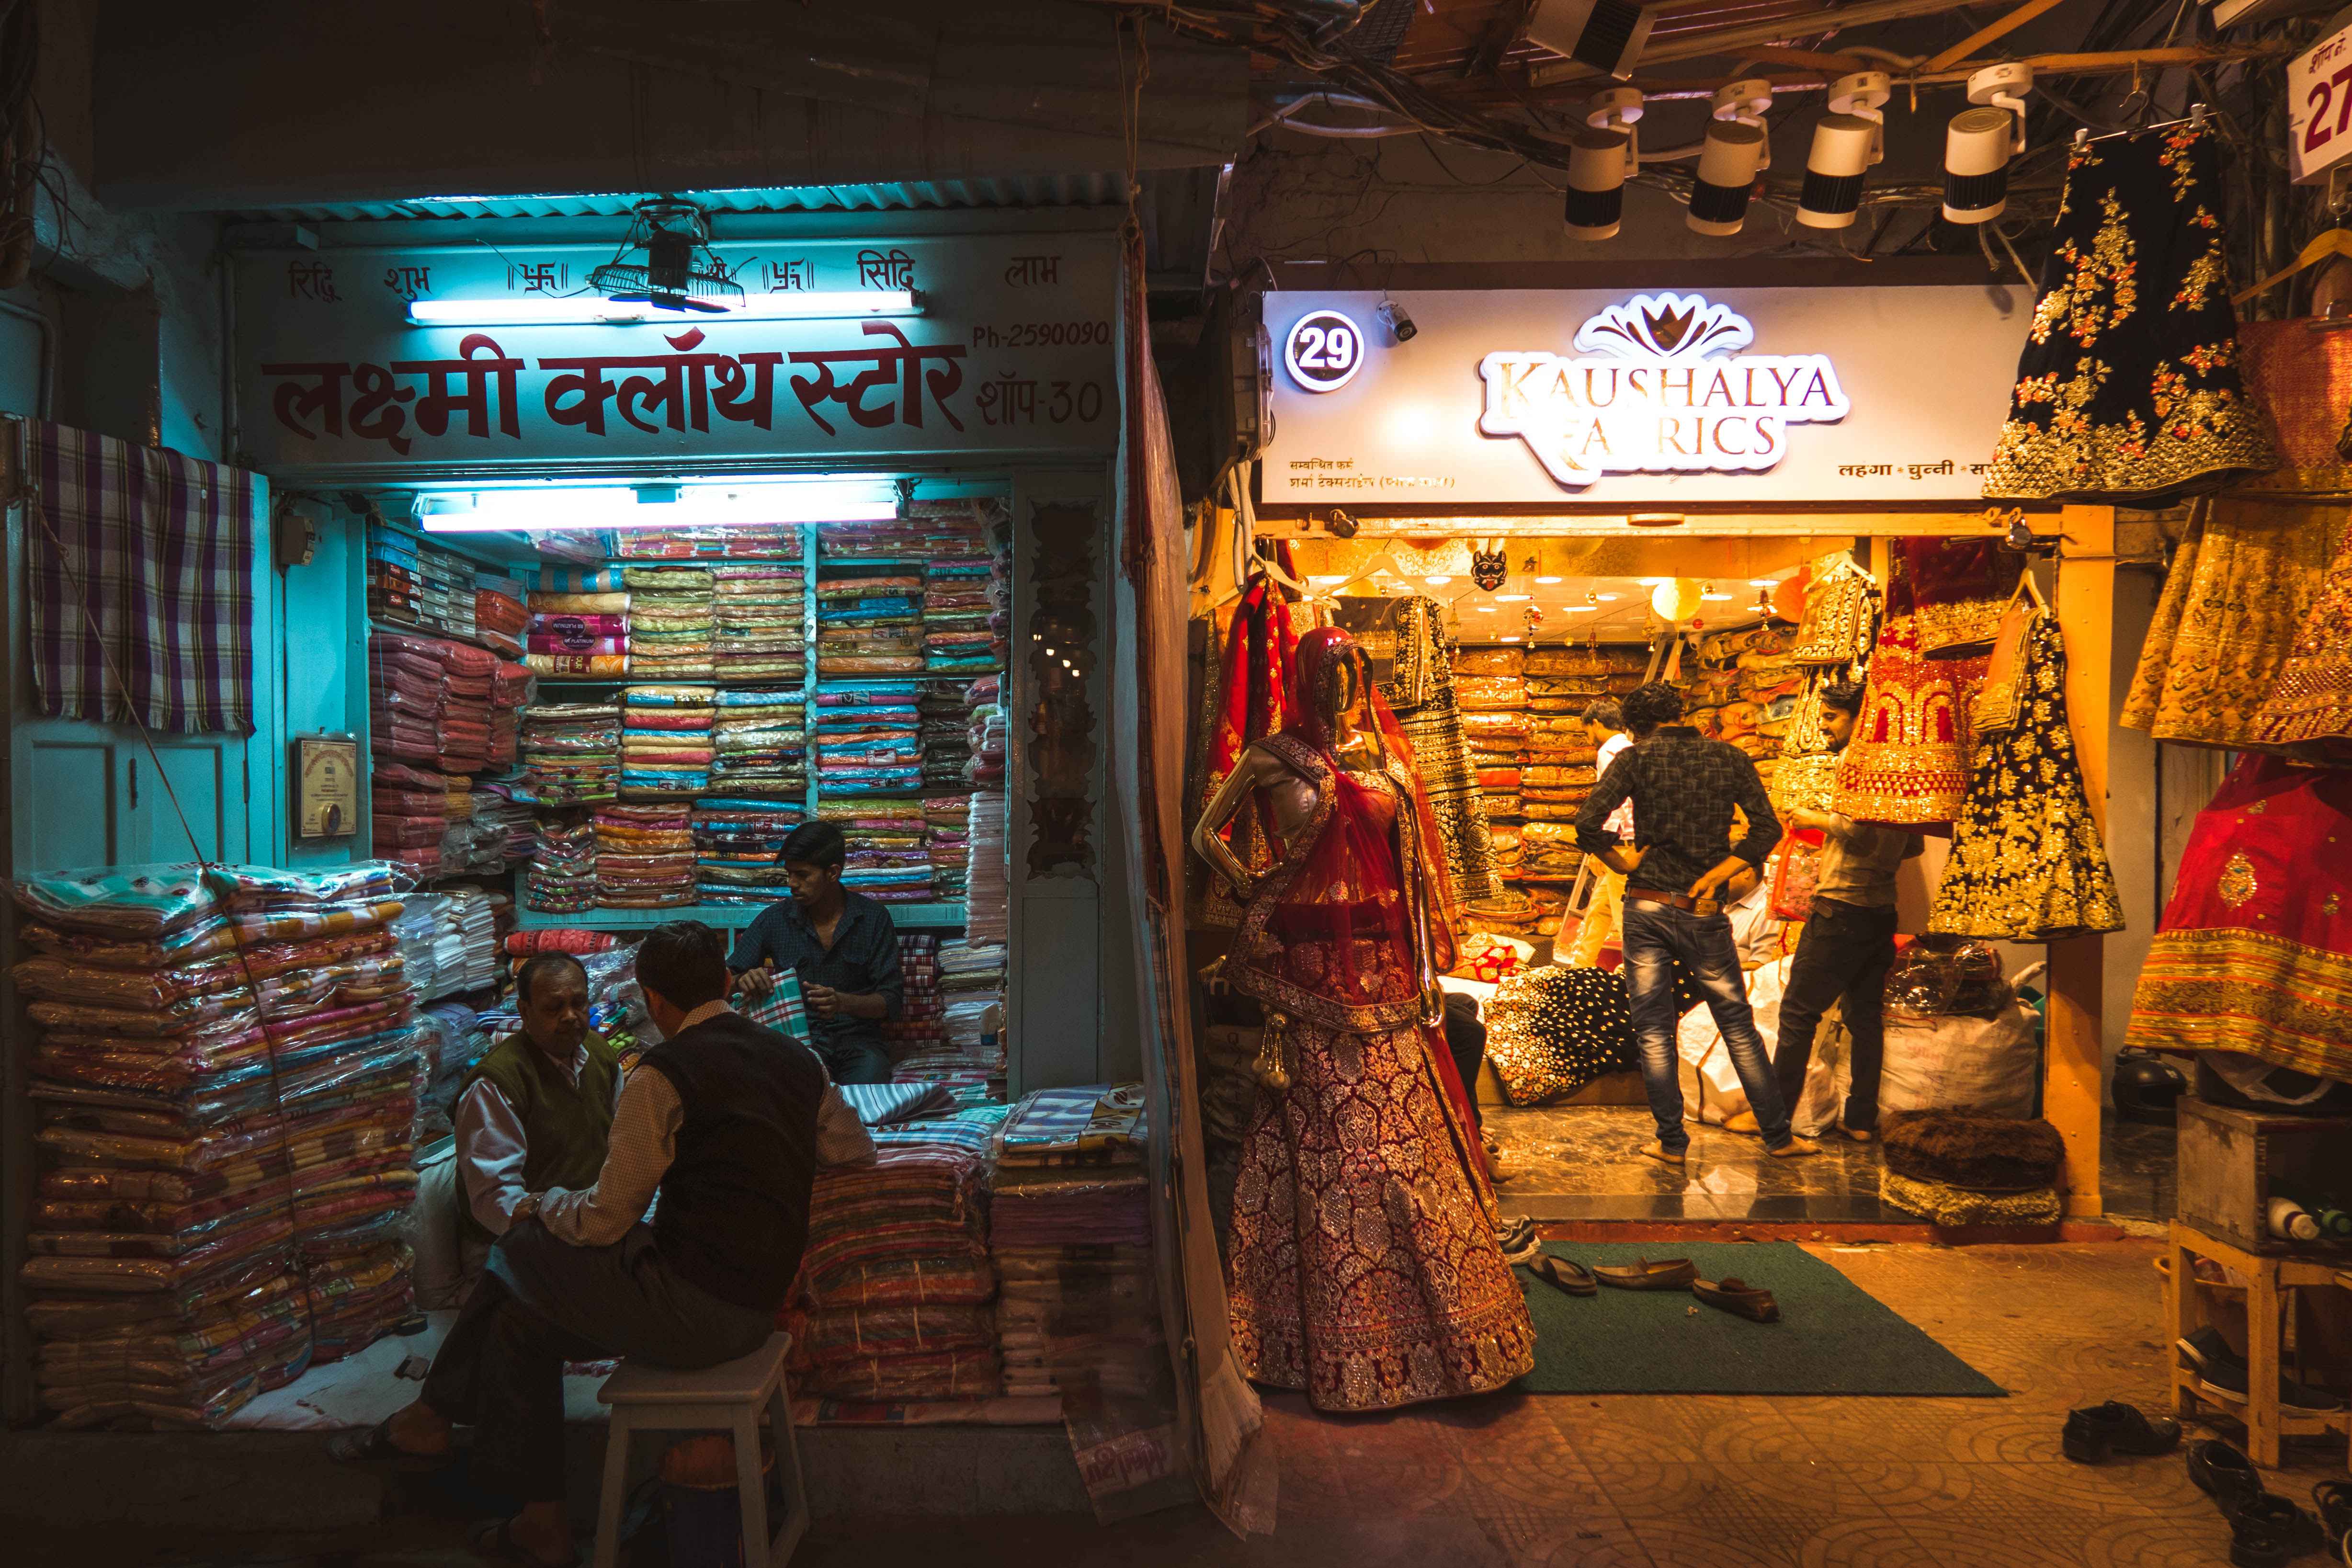 How To Bargain in India Like the Locals